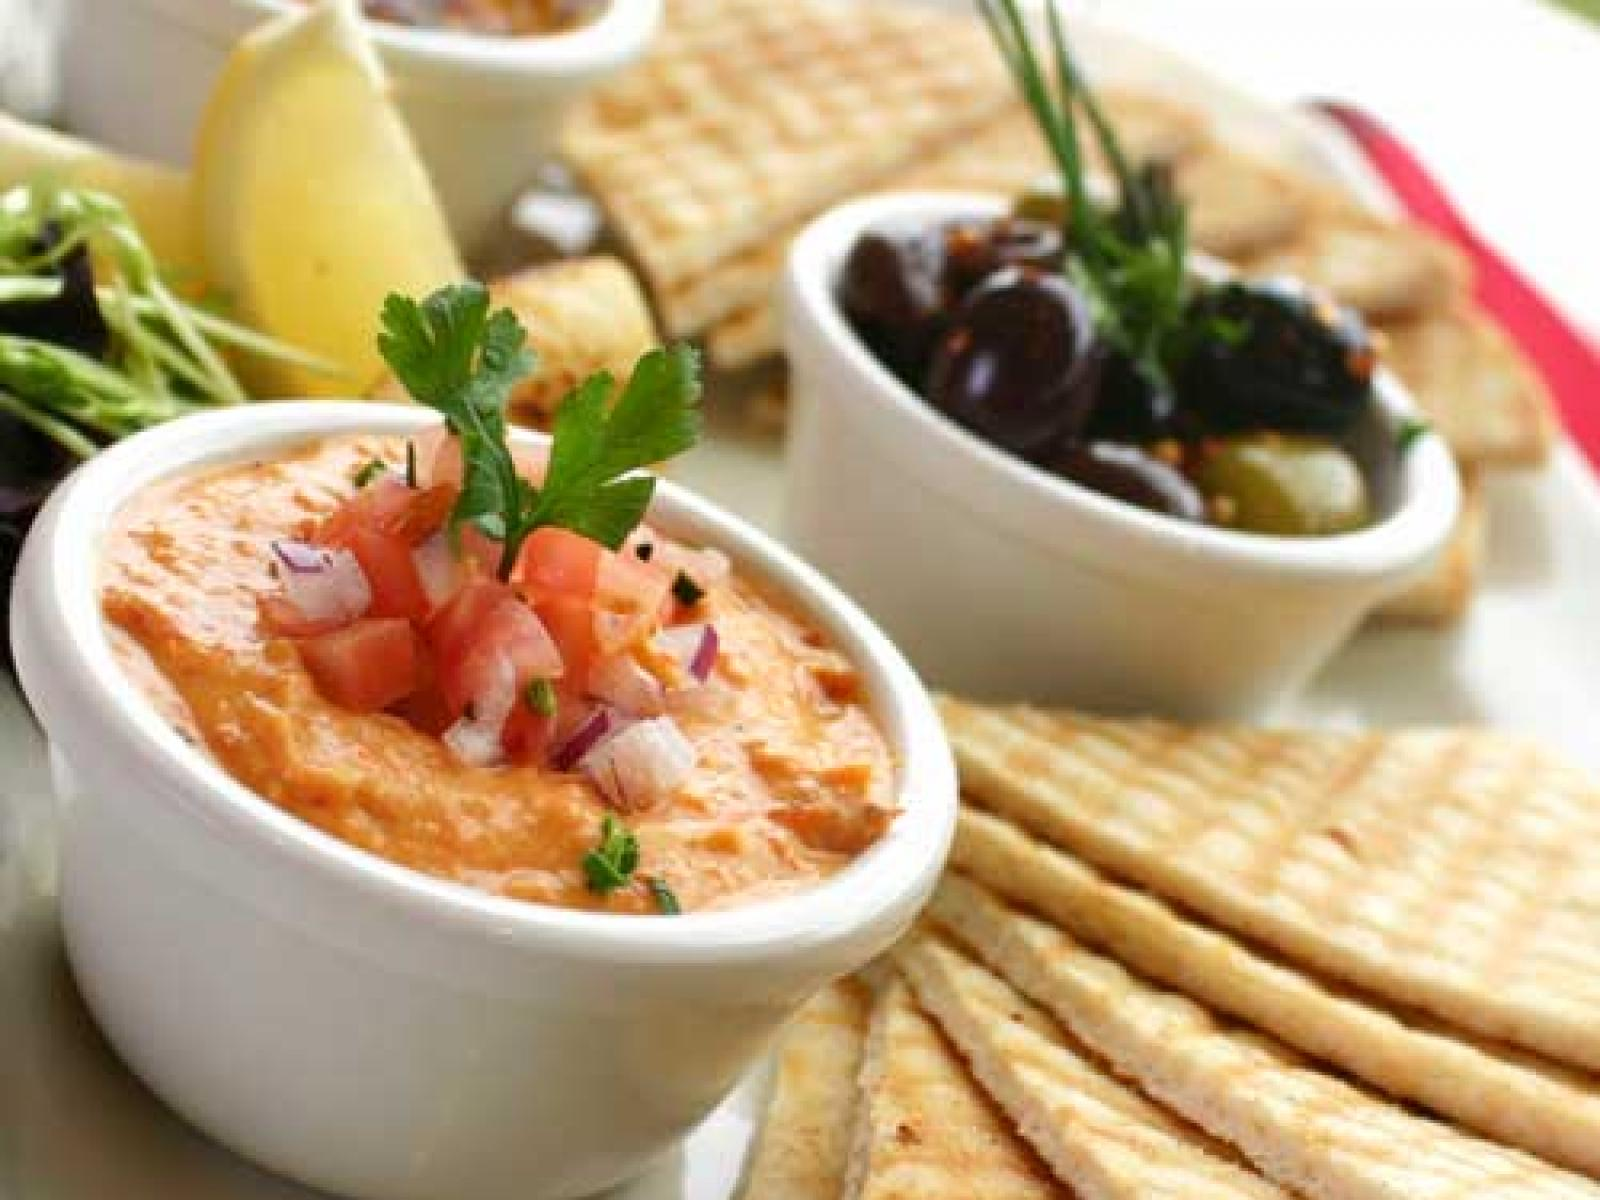 Shrimp and Crab Dip recipe